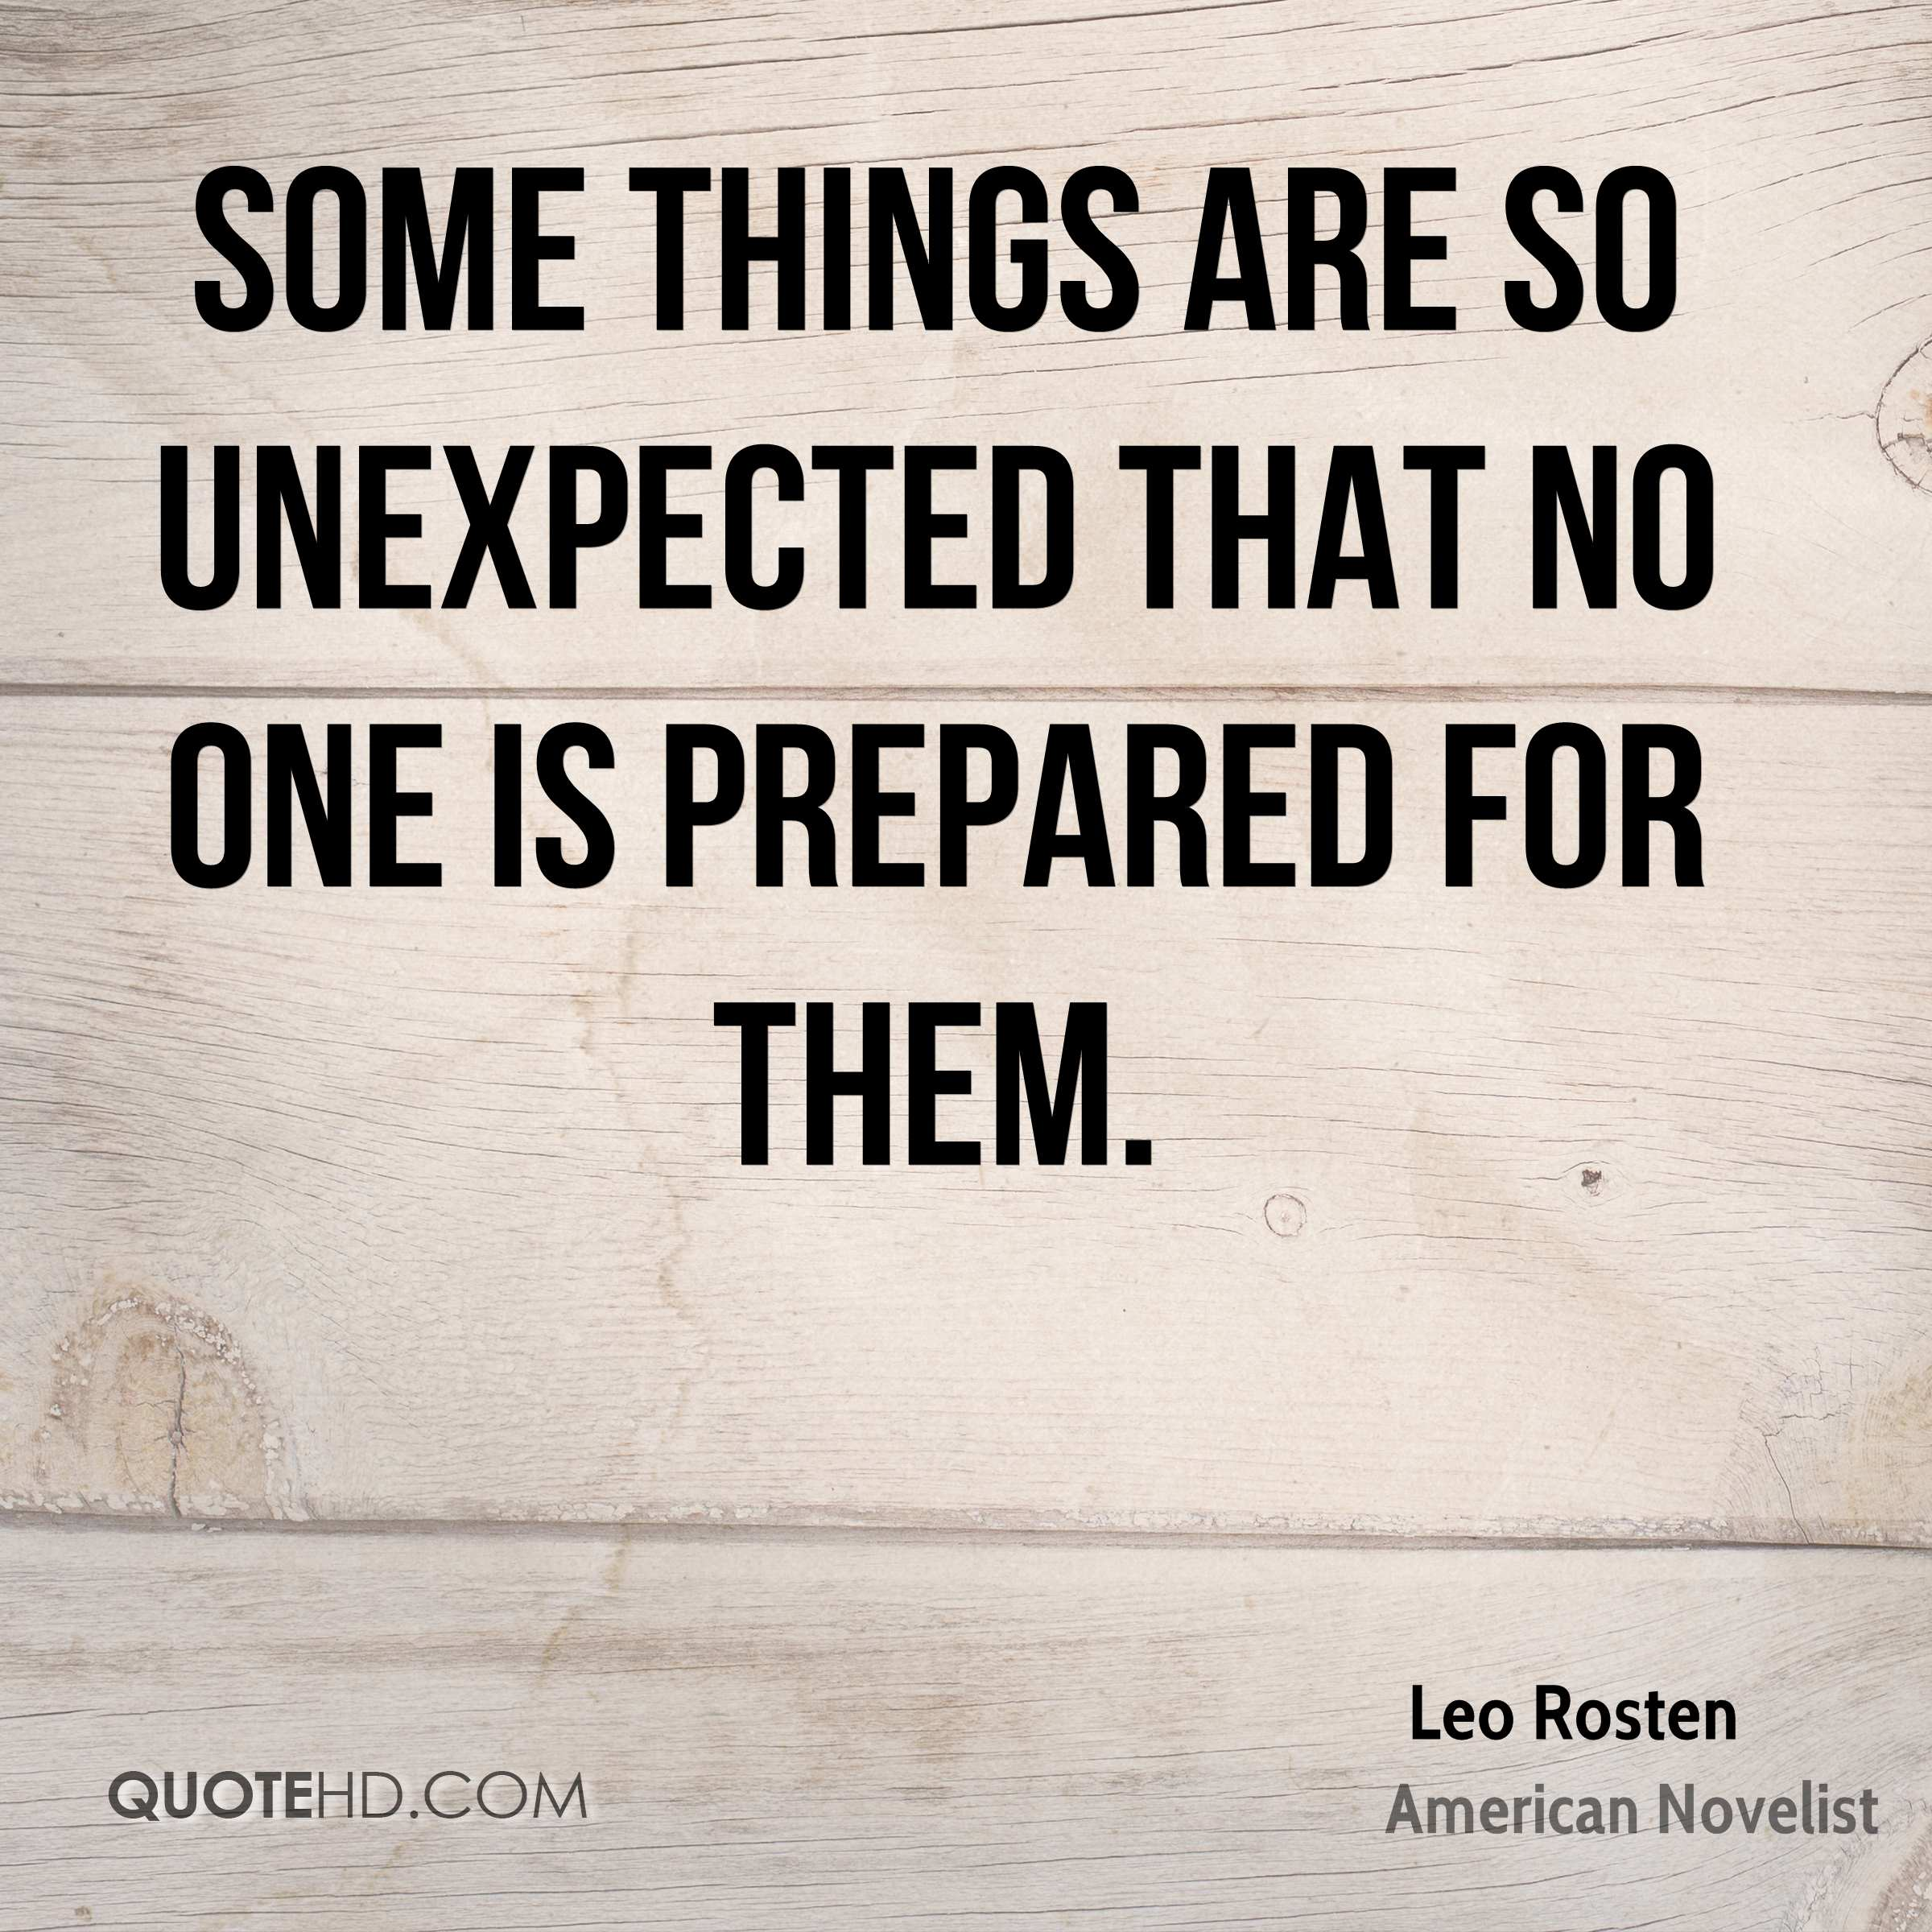 Some things are so unexpected that no one is prepared for them.